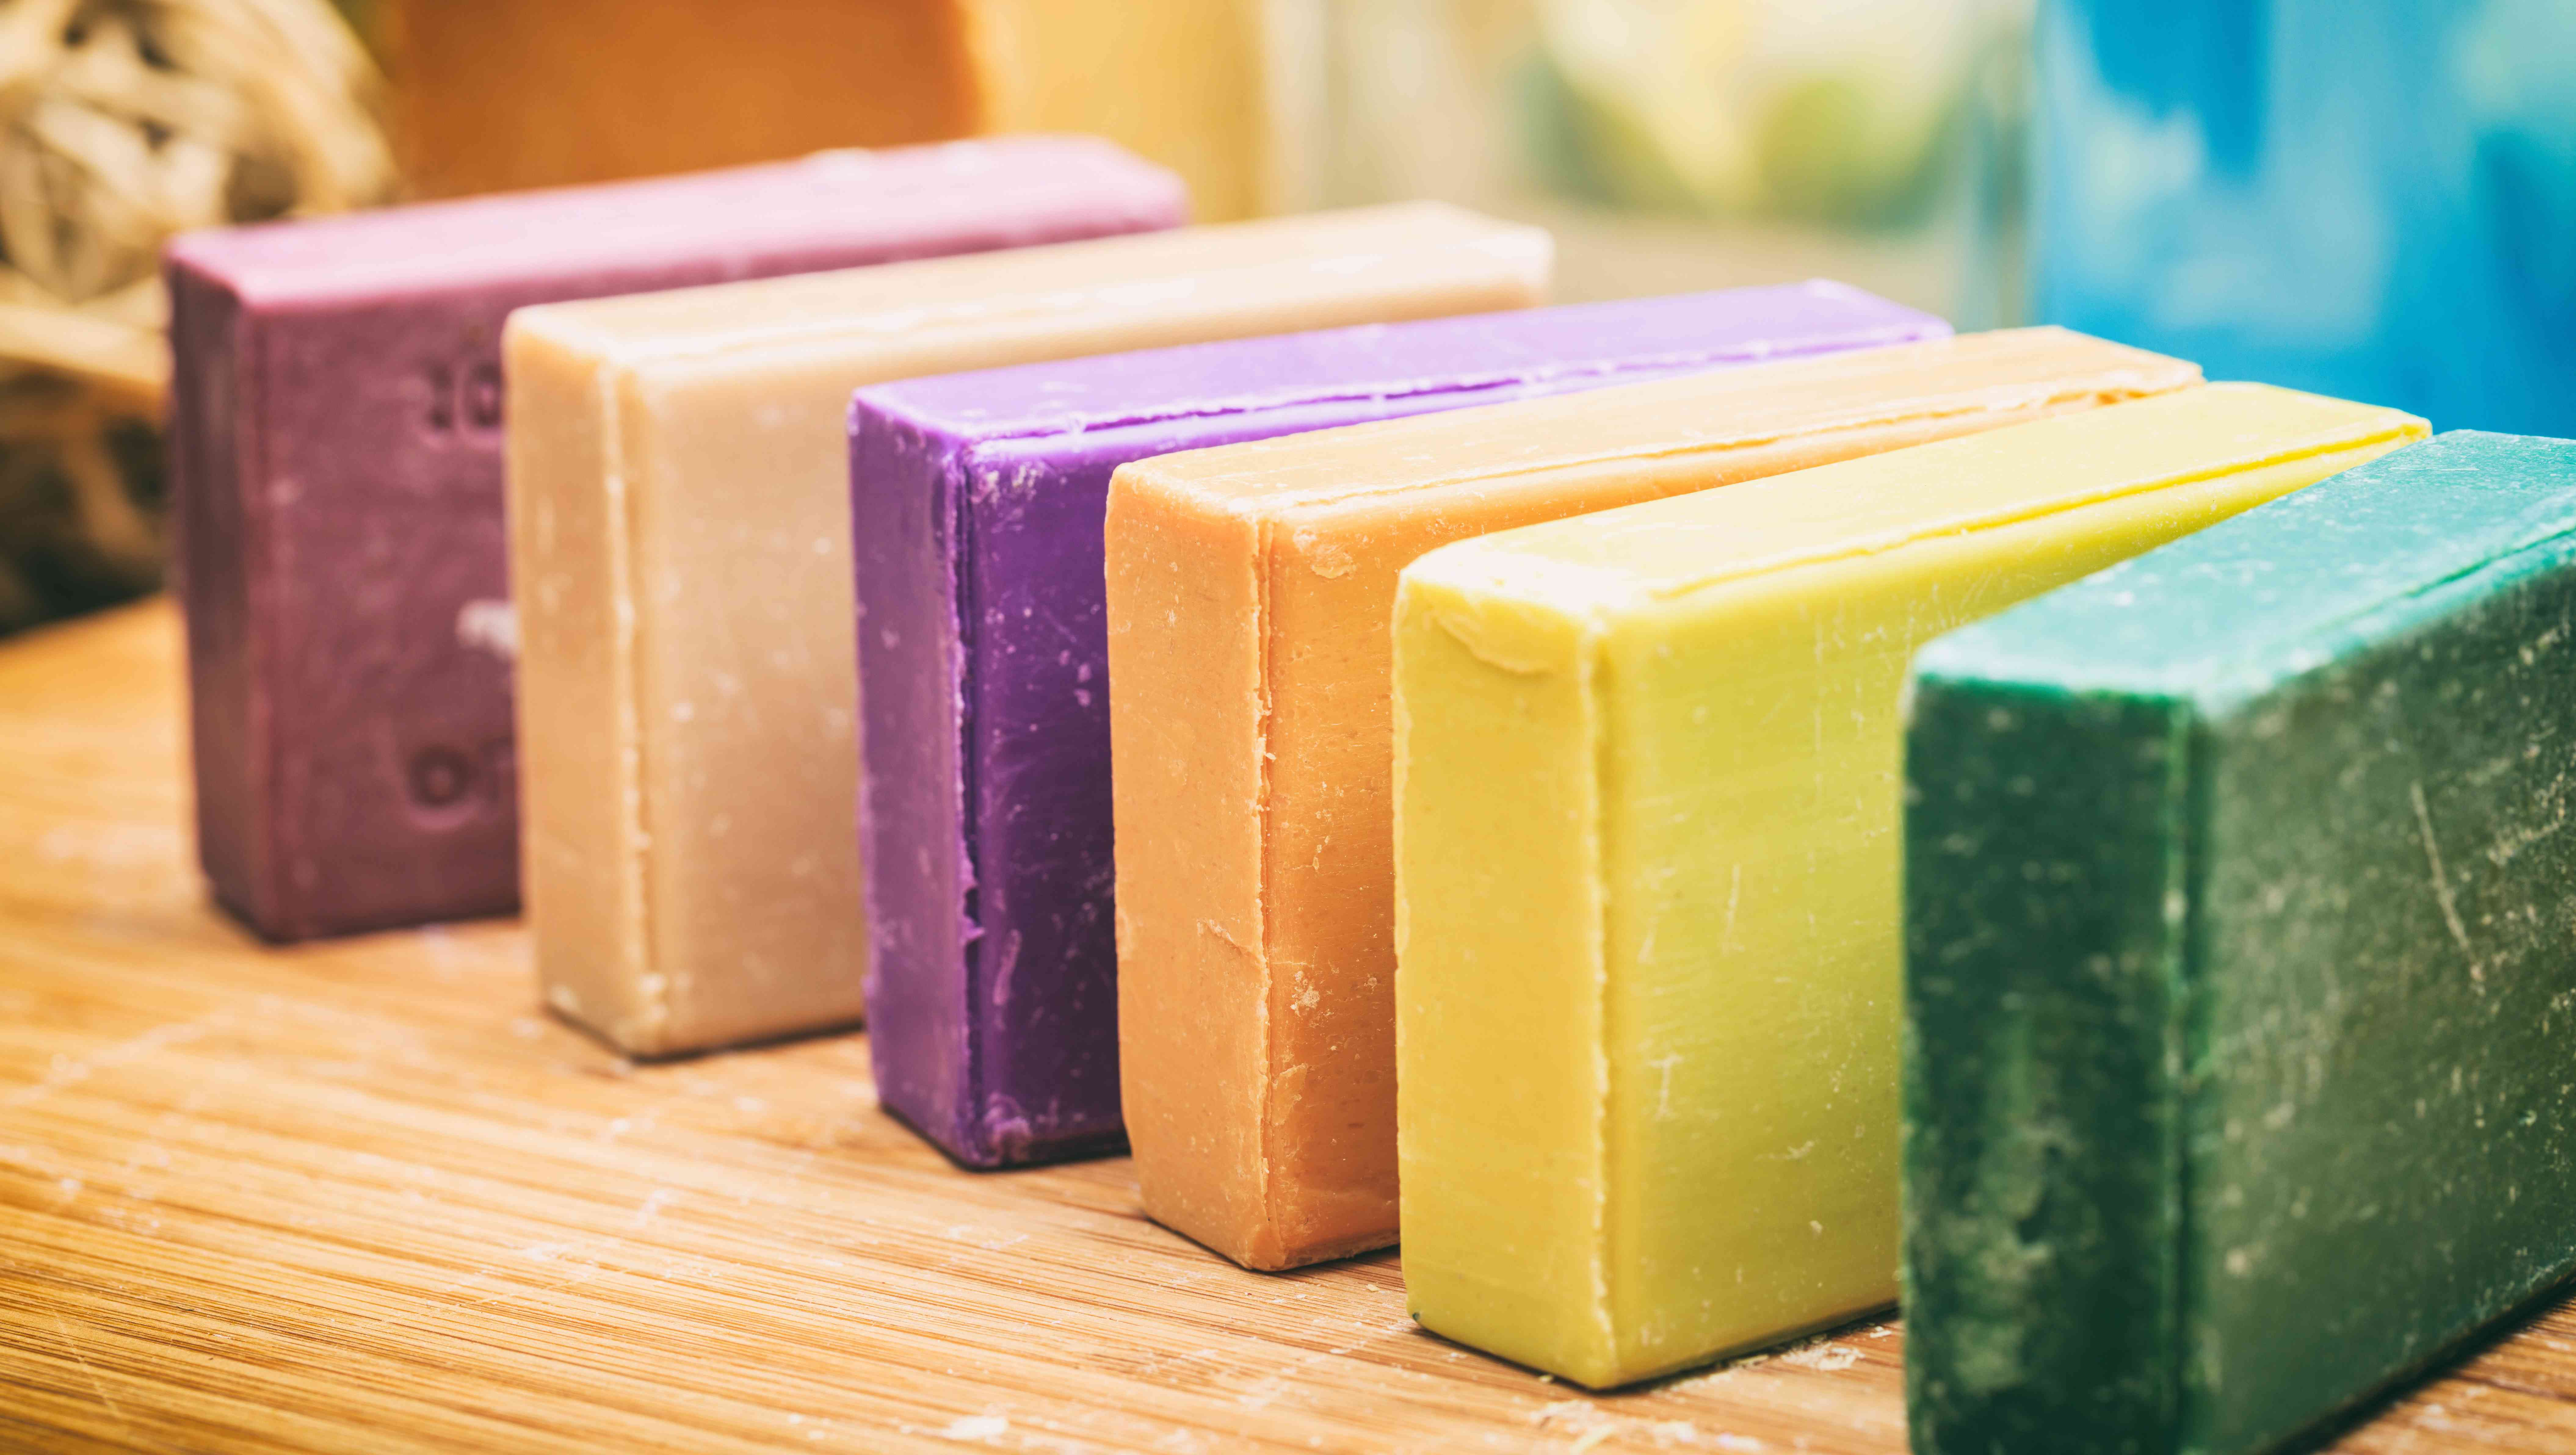 Rainbow display of colorful bar soaps on wooden background